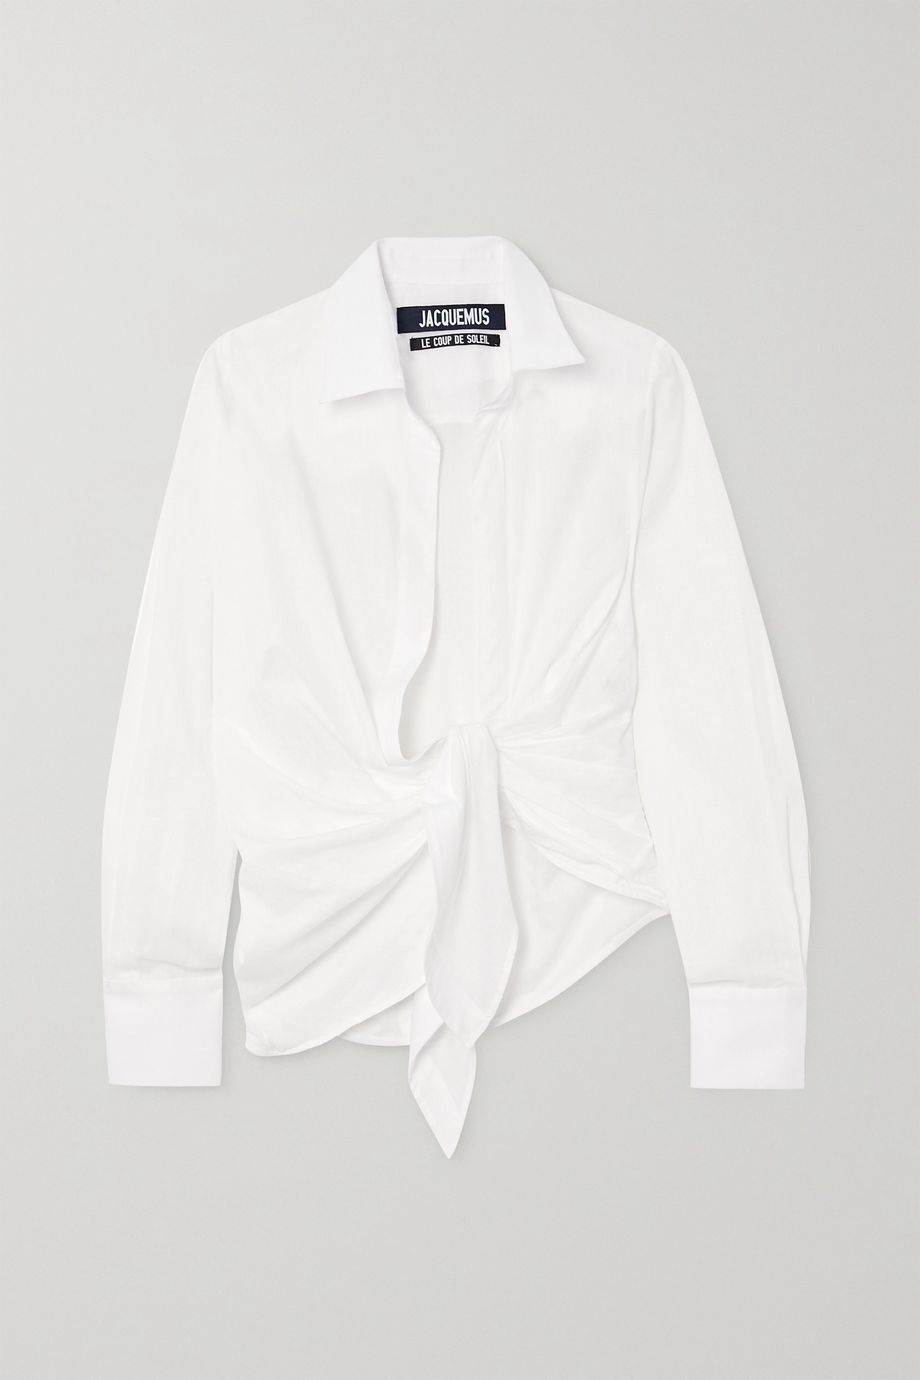 Jacquemus Bahia tie-front striped cotton-jacquard shirt